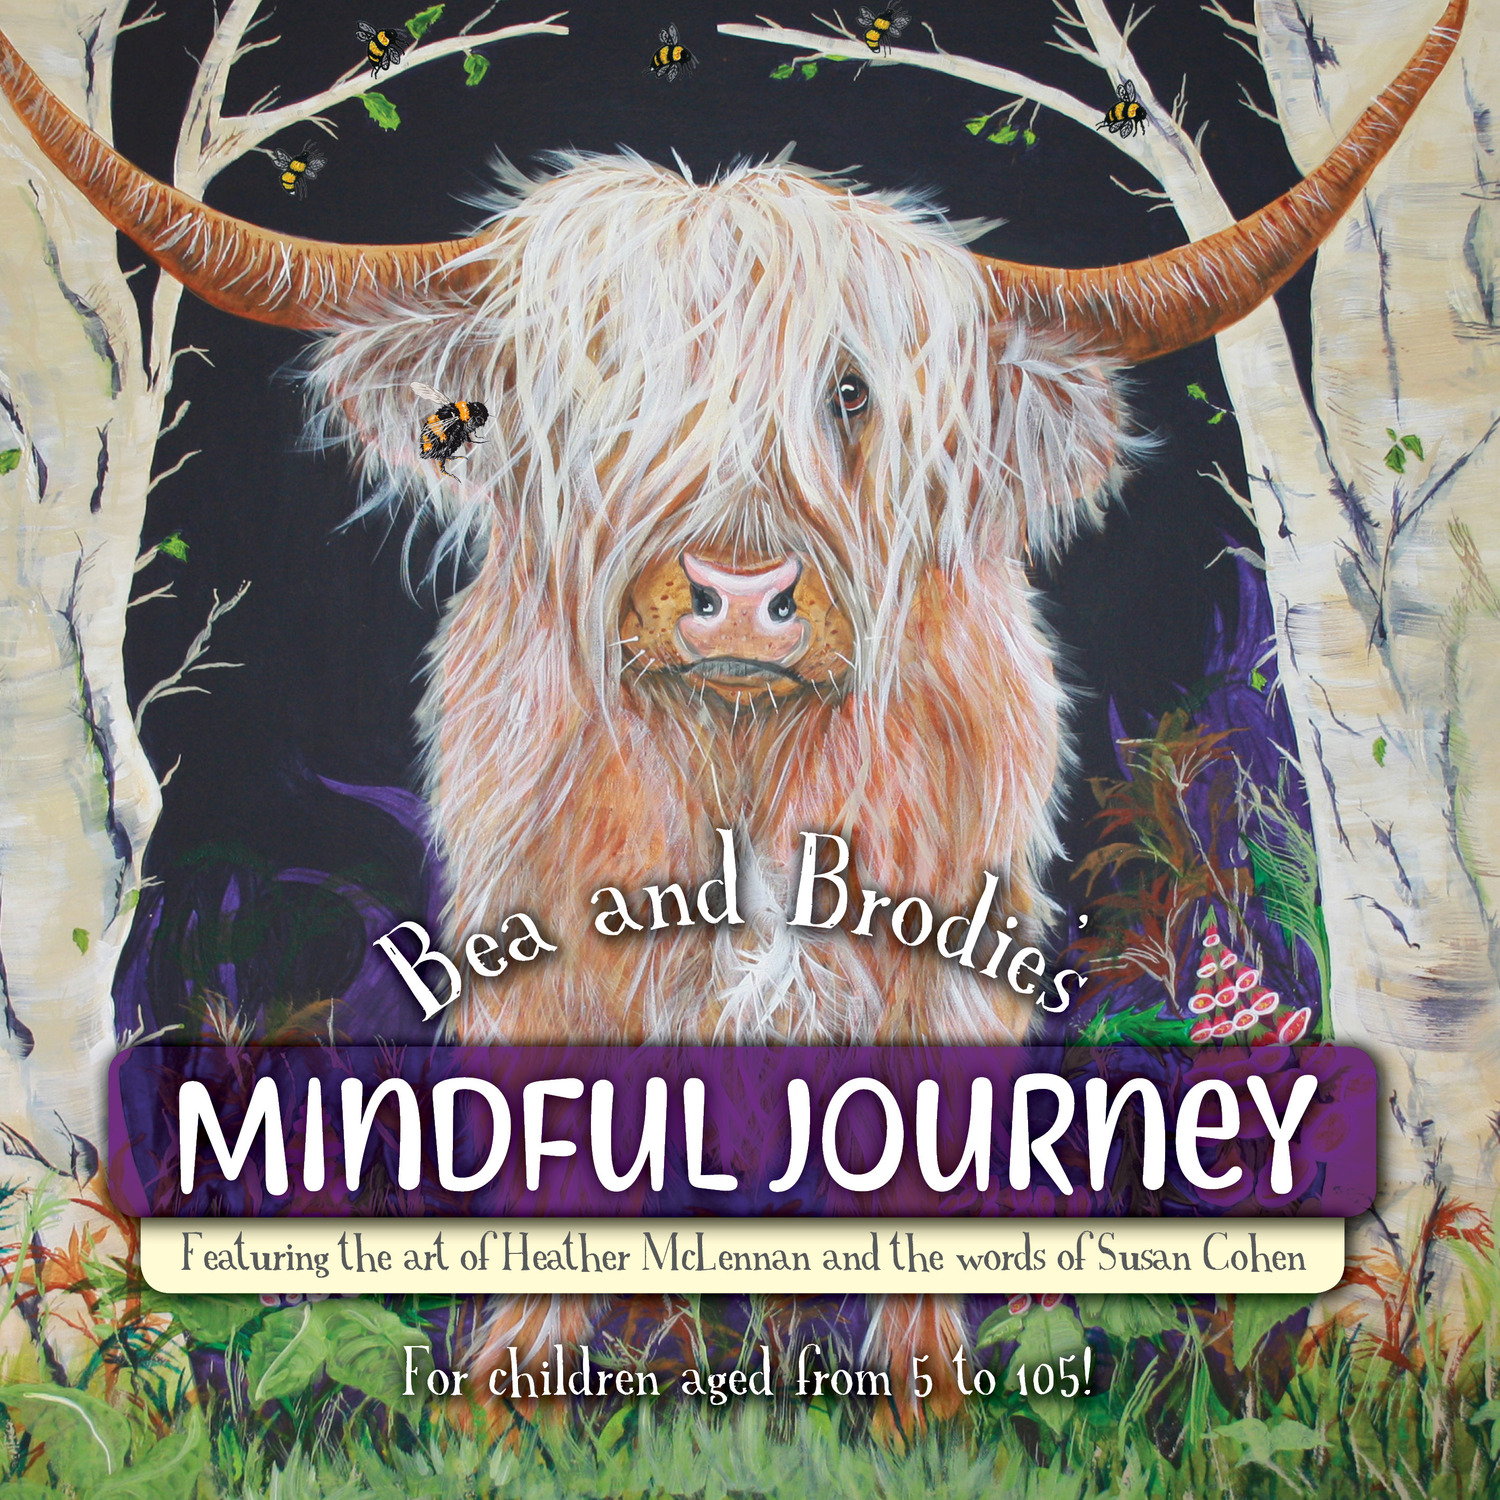 Bea and Brodie's Mindful Journey (Children's Book)